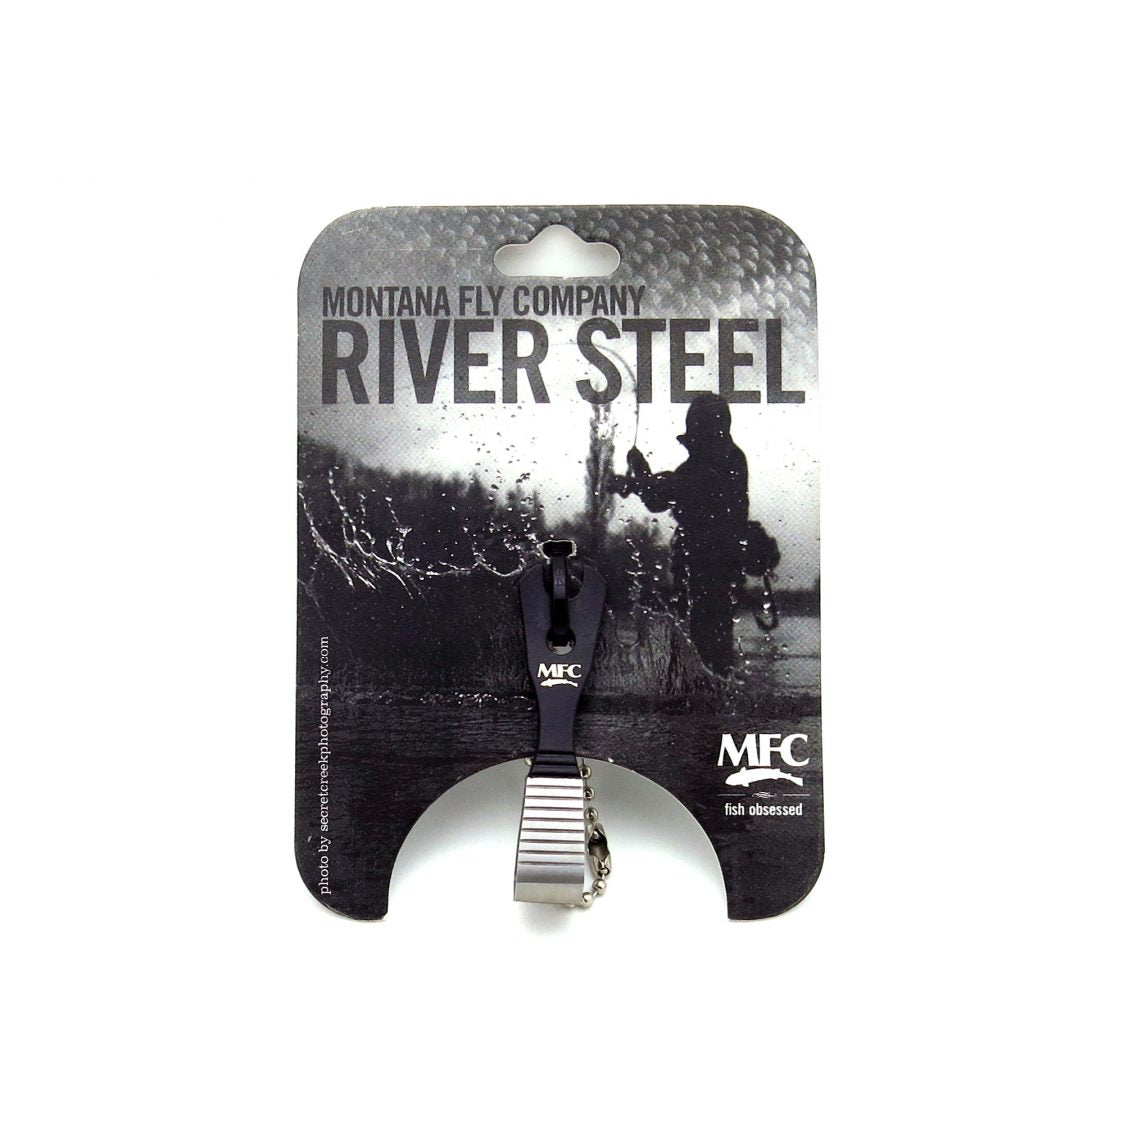 MFC River Steel - Groove Grip Nippers